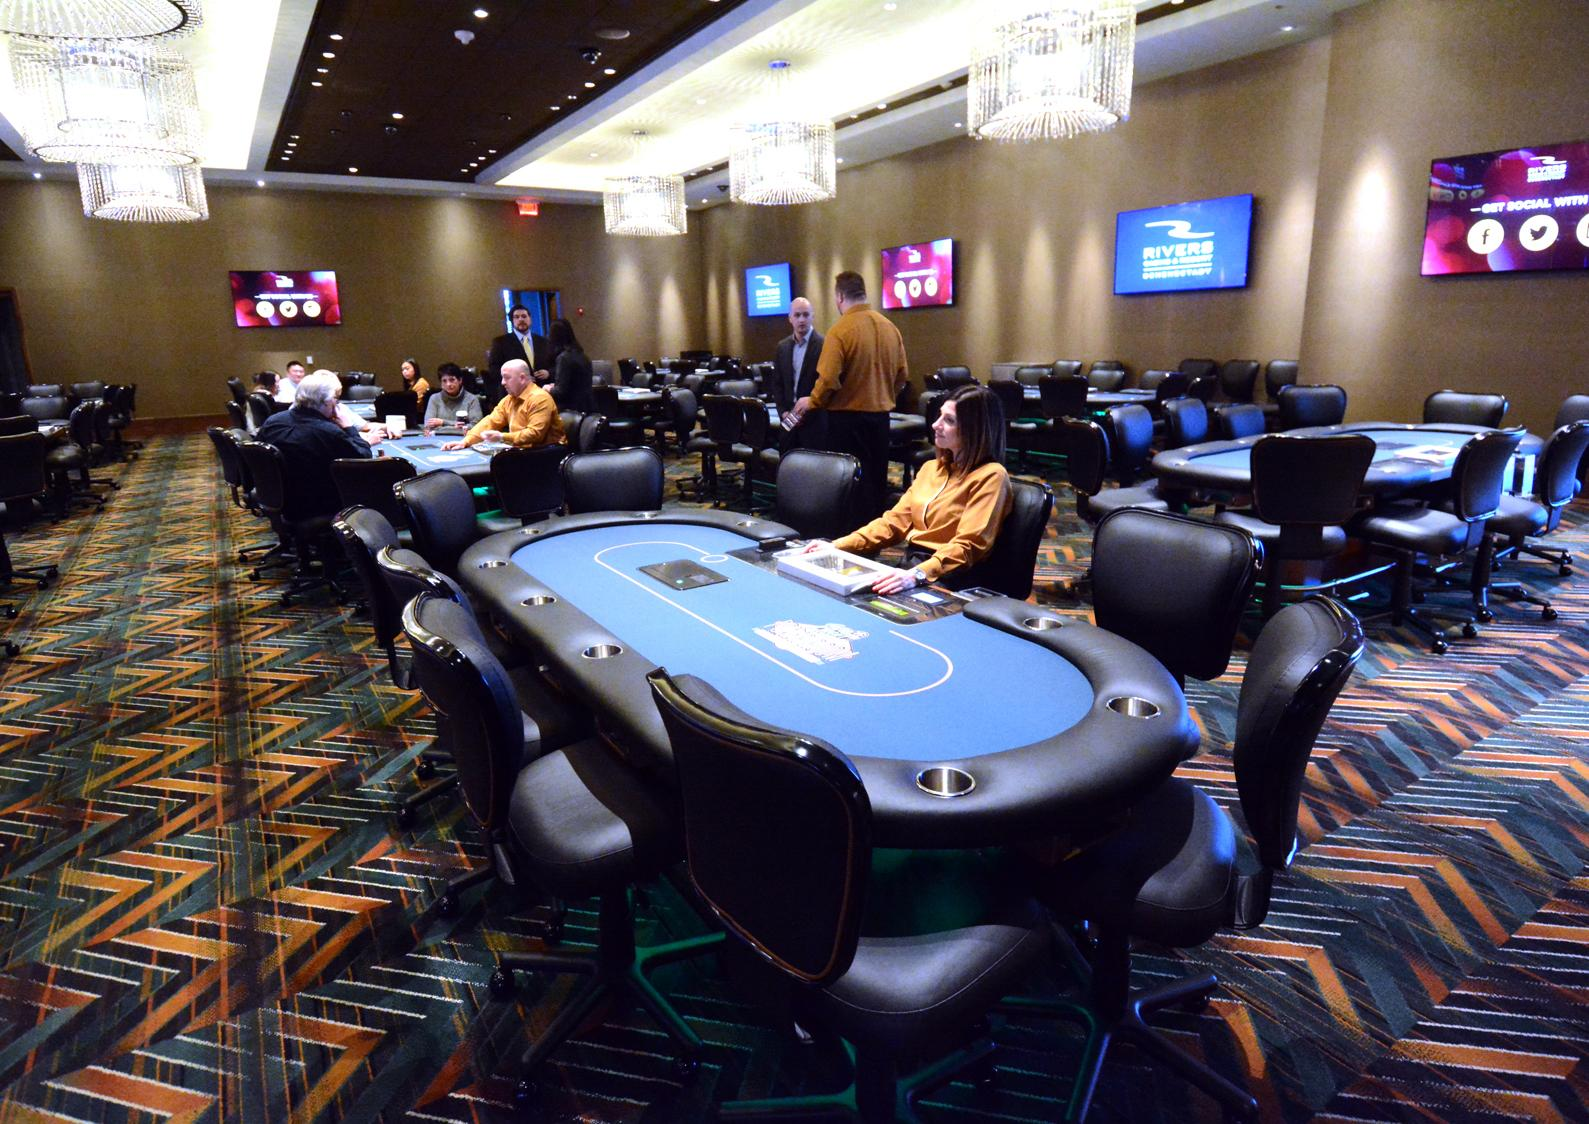 Rivers casino poker room review play free online gladiator slot games